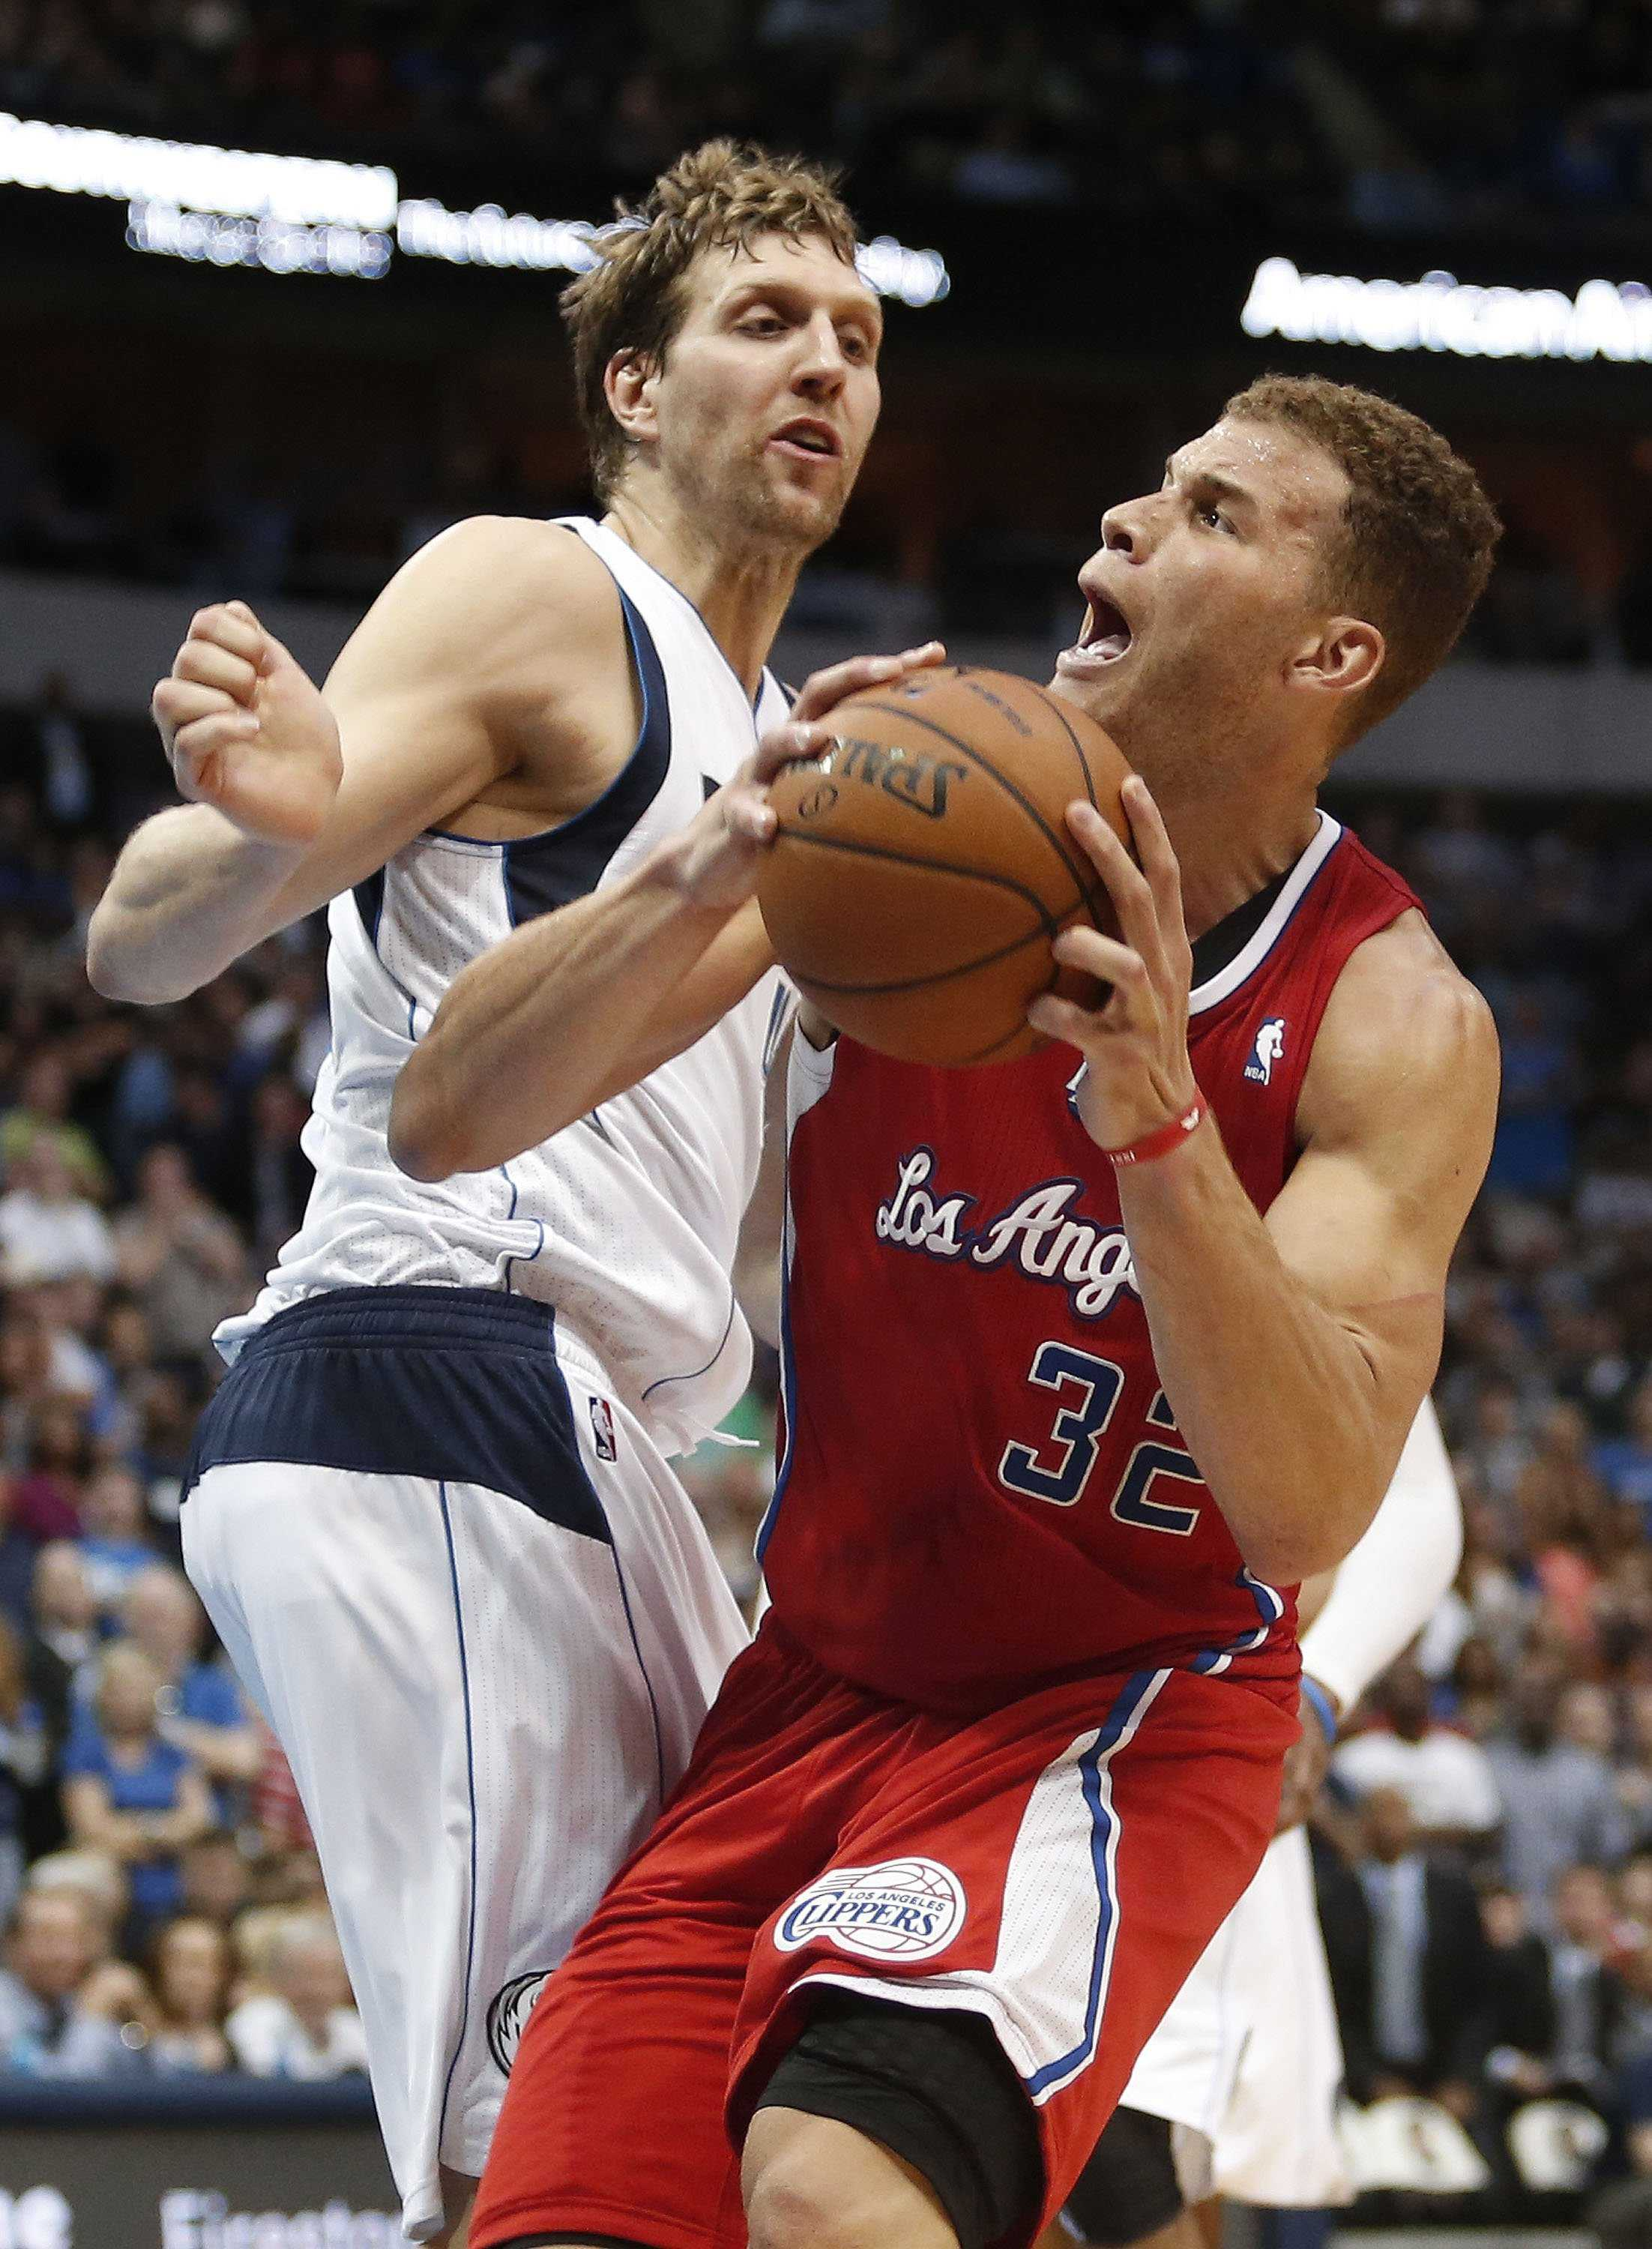 The Los Angeles Clippers' Blake Griffin (32) looks for the net as the Dallas Mavericks' Dirk Nowitzki defends in the fourth quarter at the American Airlines Center in Dallas on Thursday, March 27, 2014. The Clippers won, 109-103. (Paul Moseley/Fort Worth Star-Telegram/MCT)